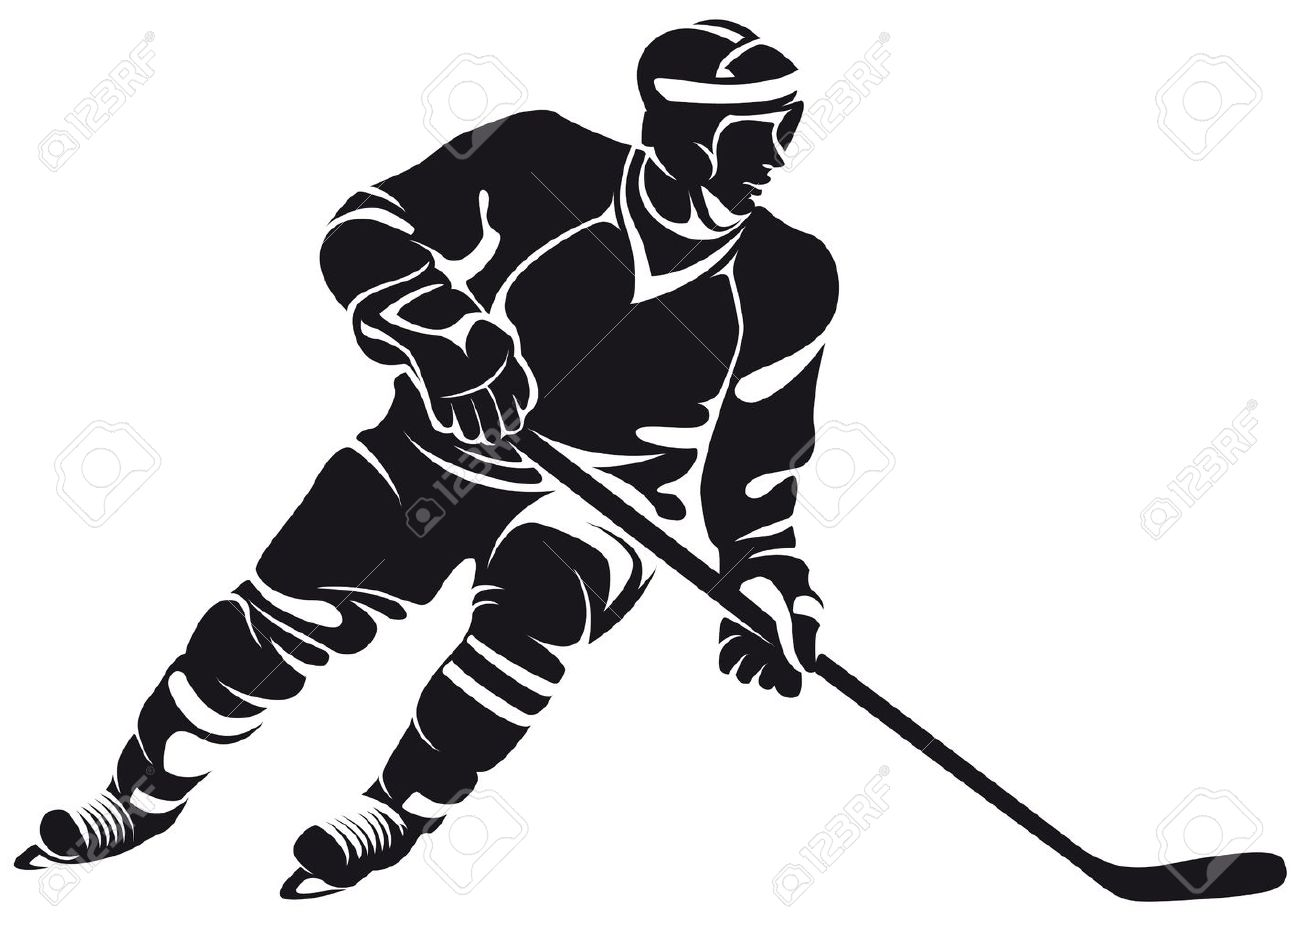 hockey player, silhouette, isolated on white Stock Vector - 16828034